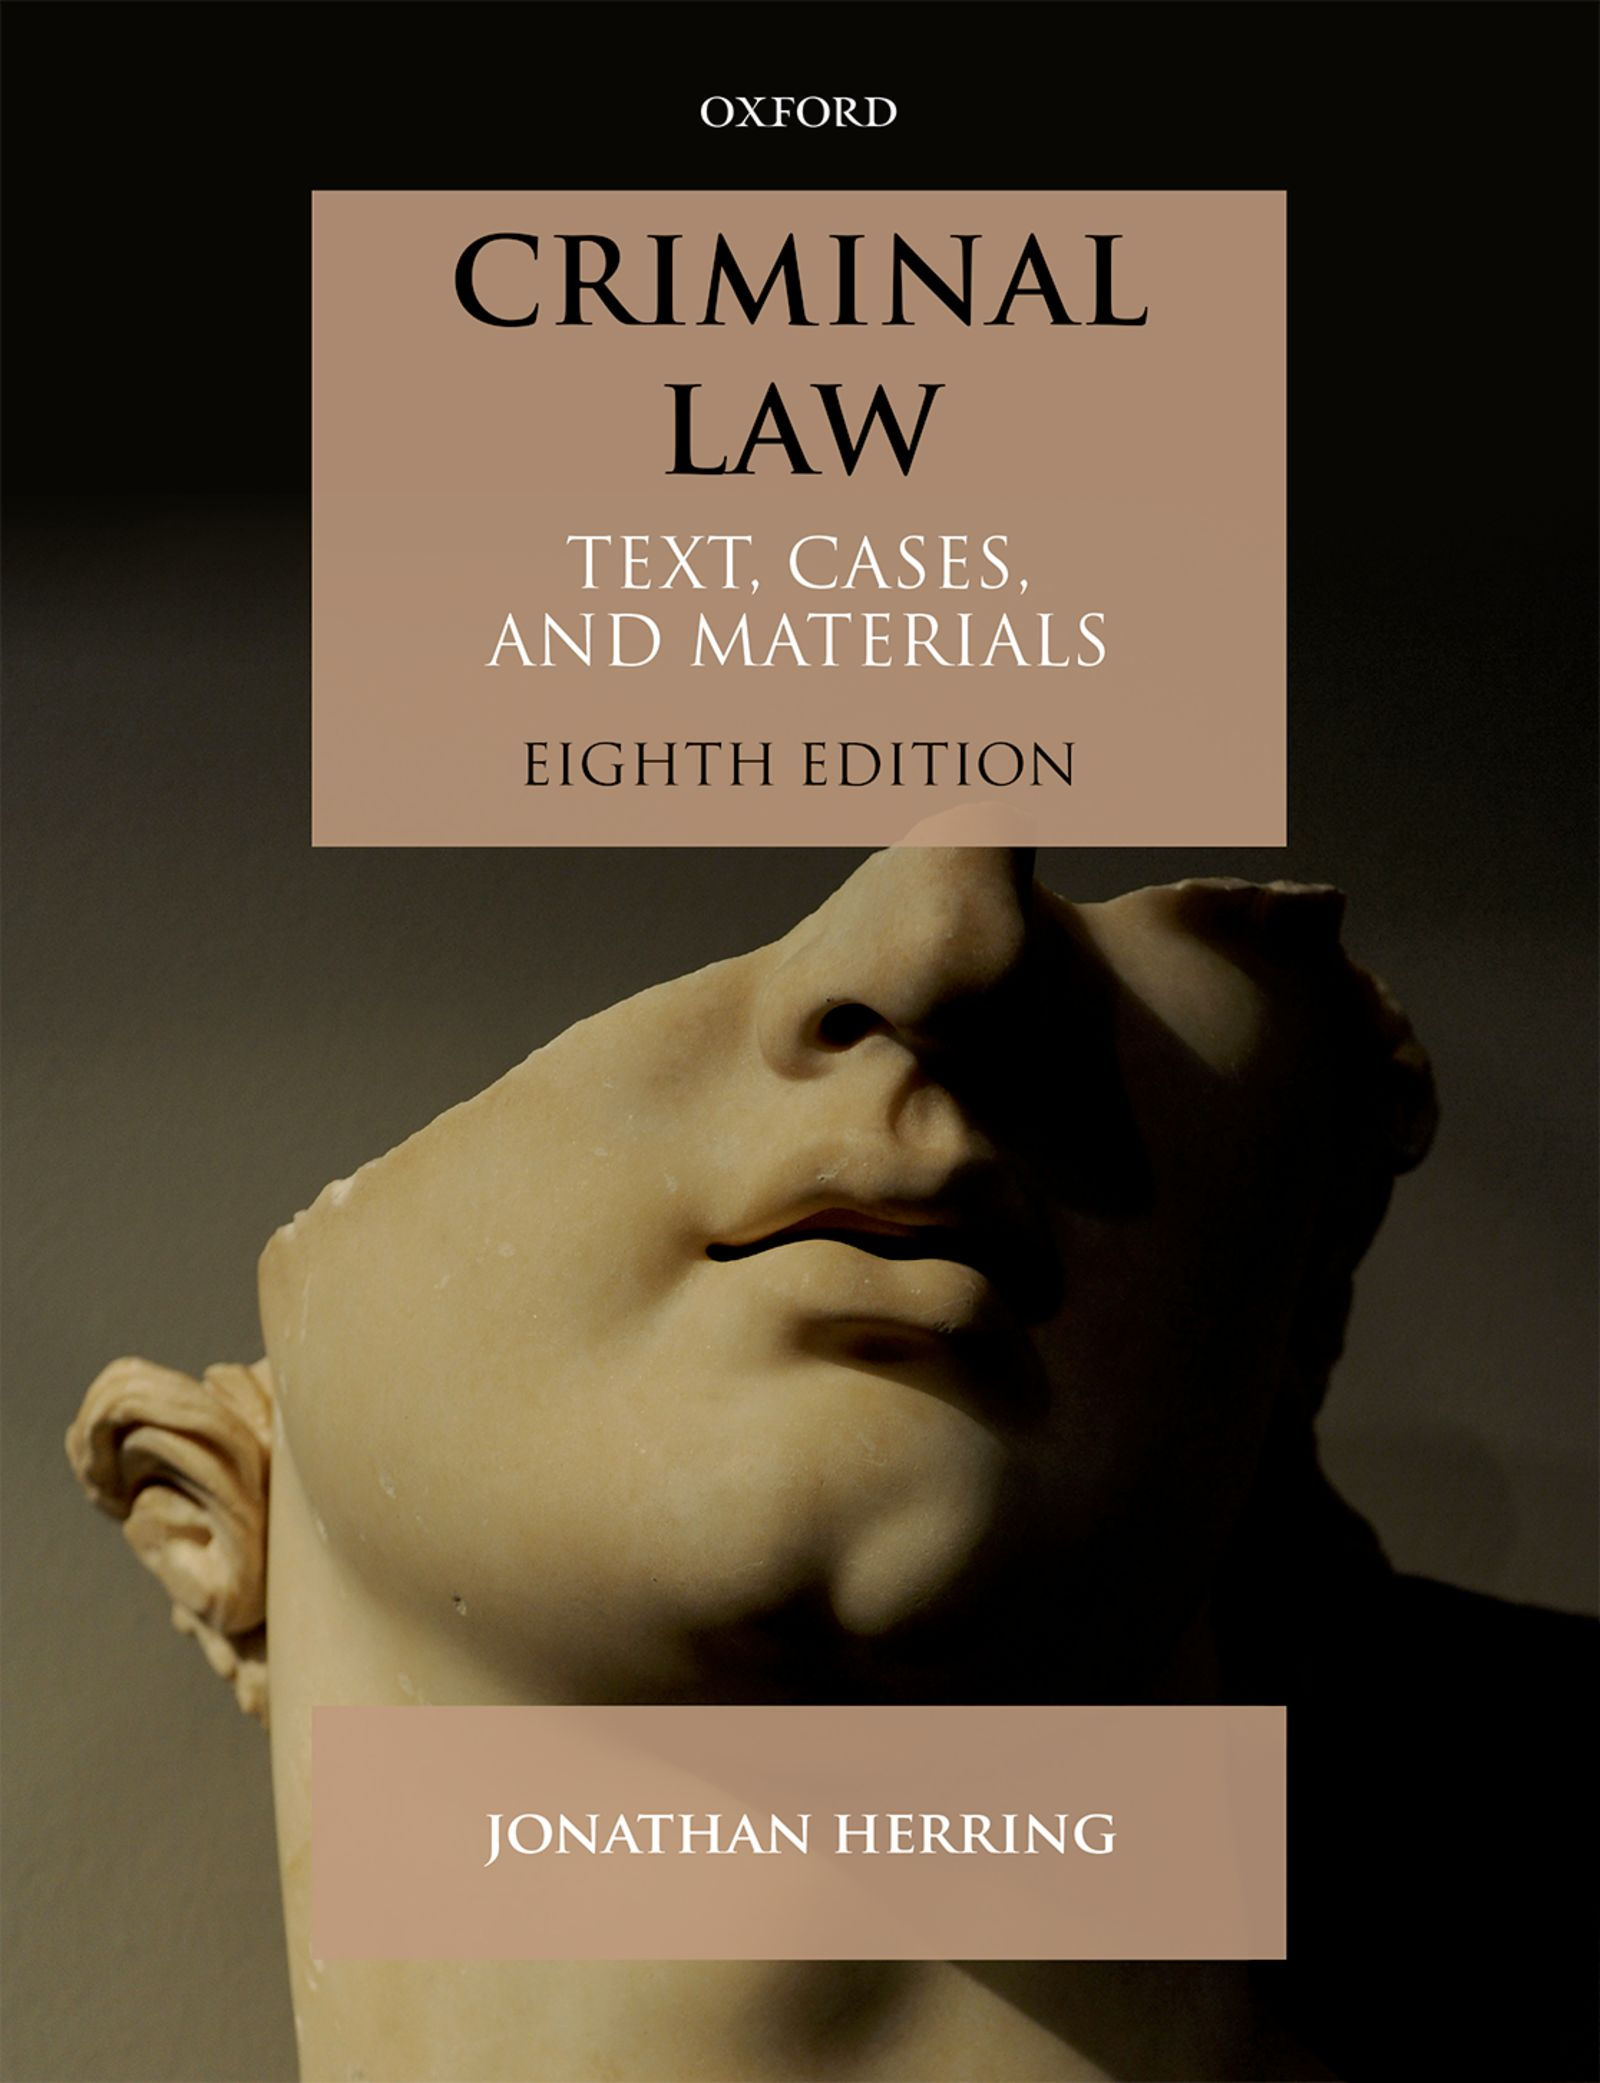 Criminal Law: Text, Cases, and Materials 8e Lecturer resources